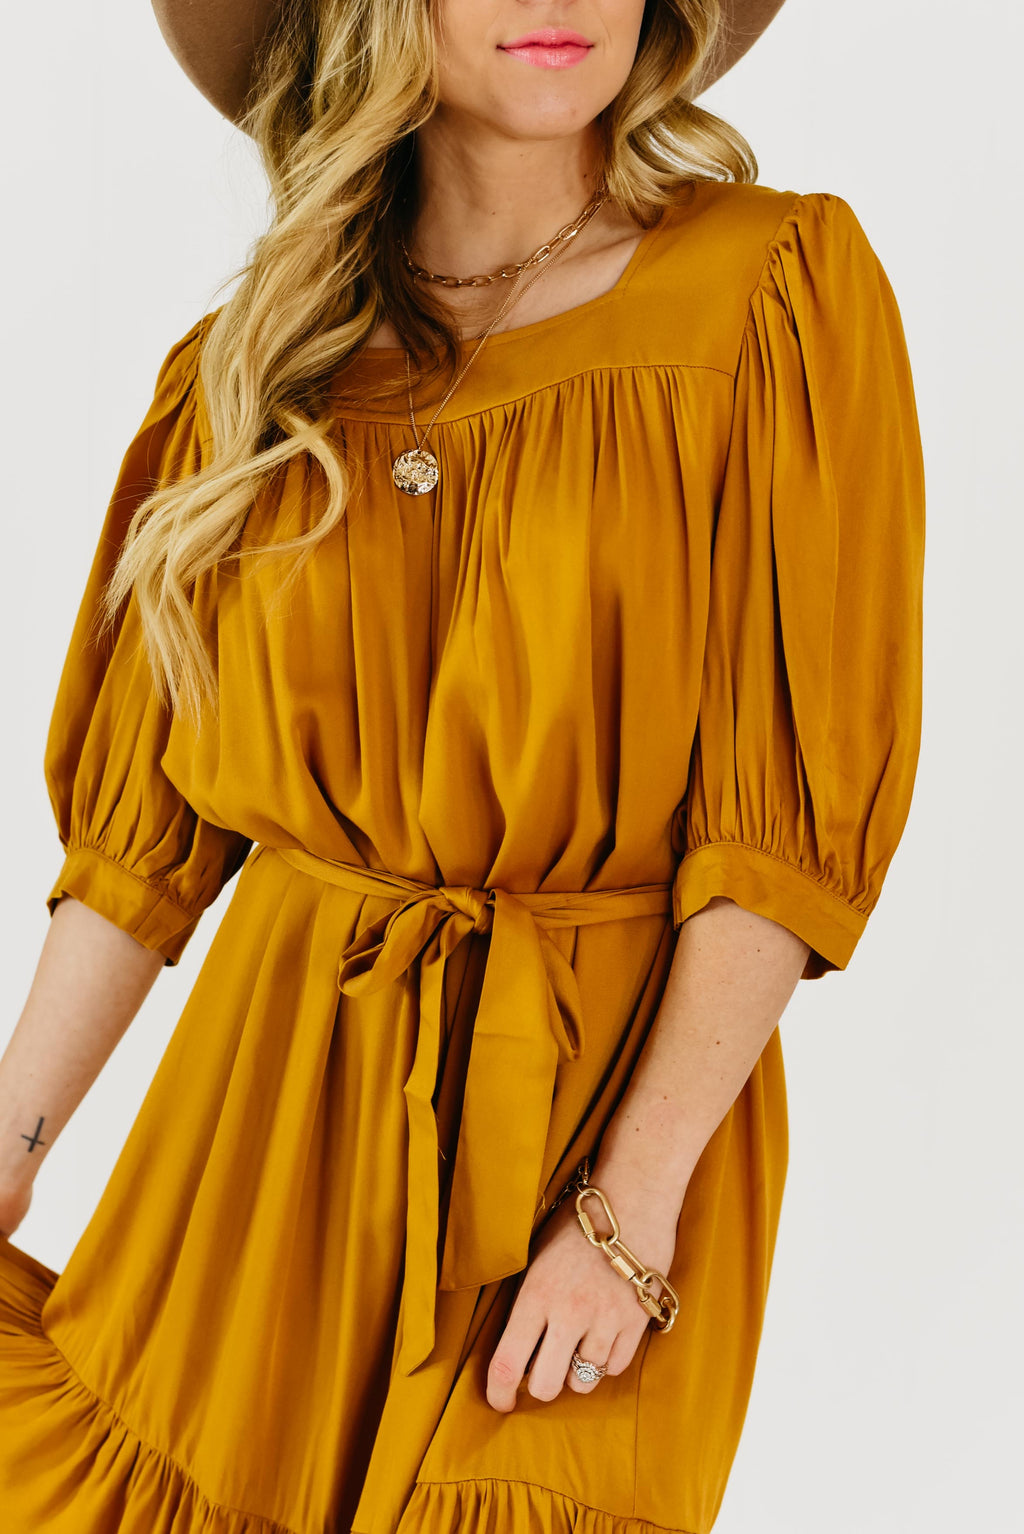 The Markie Tiered Dress - Mustard